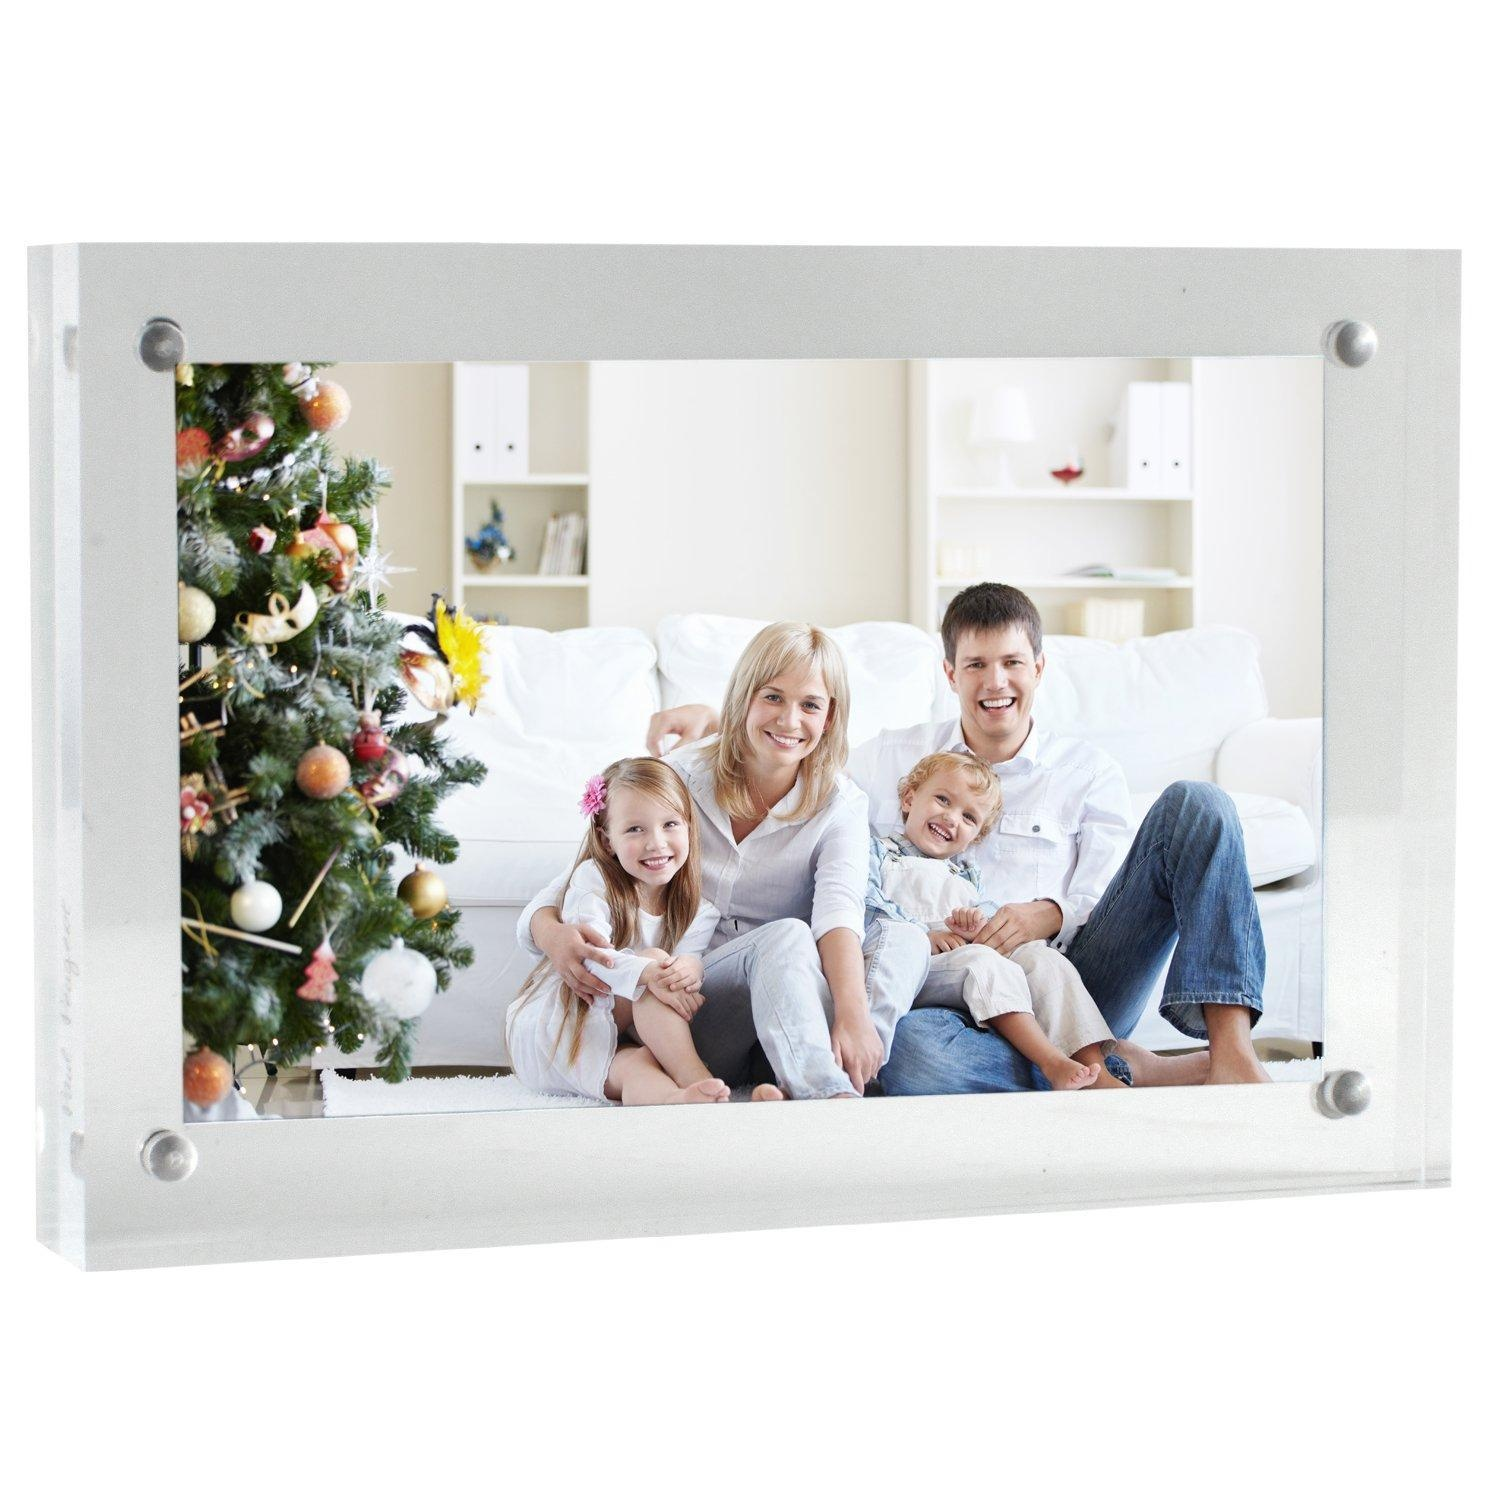 Online Store Paul Peugeot Clear Acrylic Picture Frames